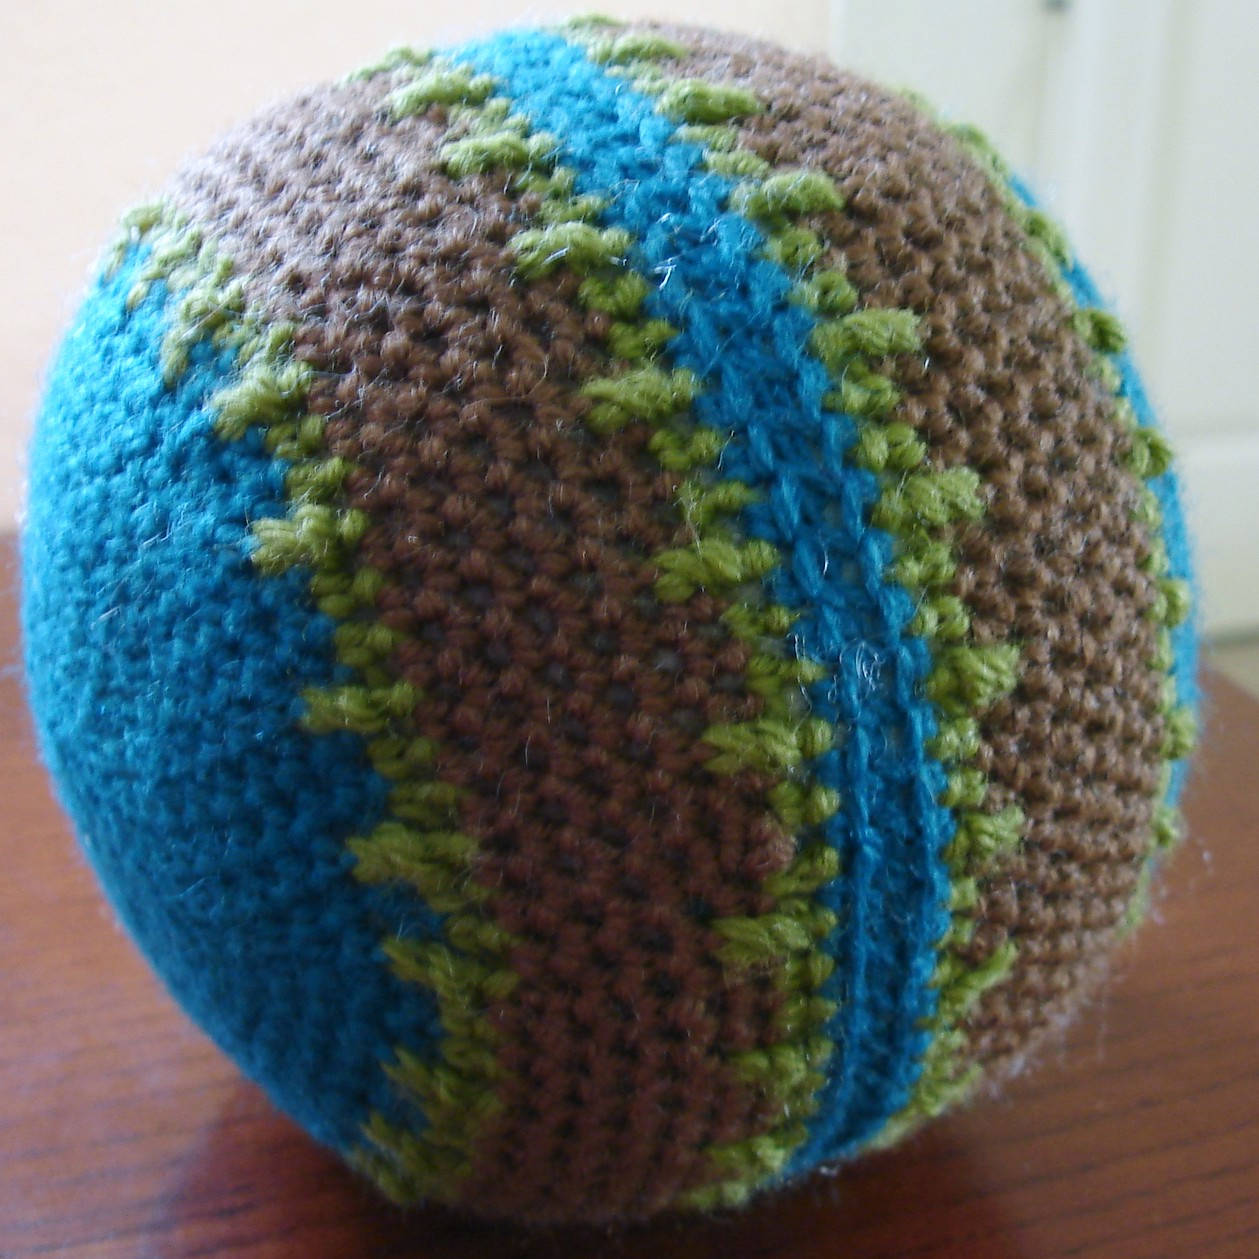 Crochet Ball Pattern Crochet Ball Toy Pattern Crochet Toys Plushies Doitory Doitory